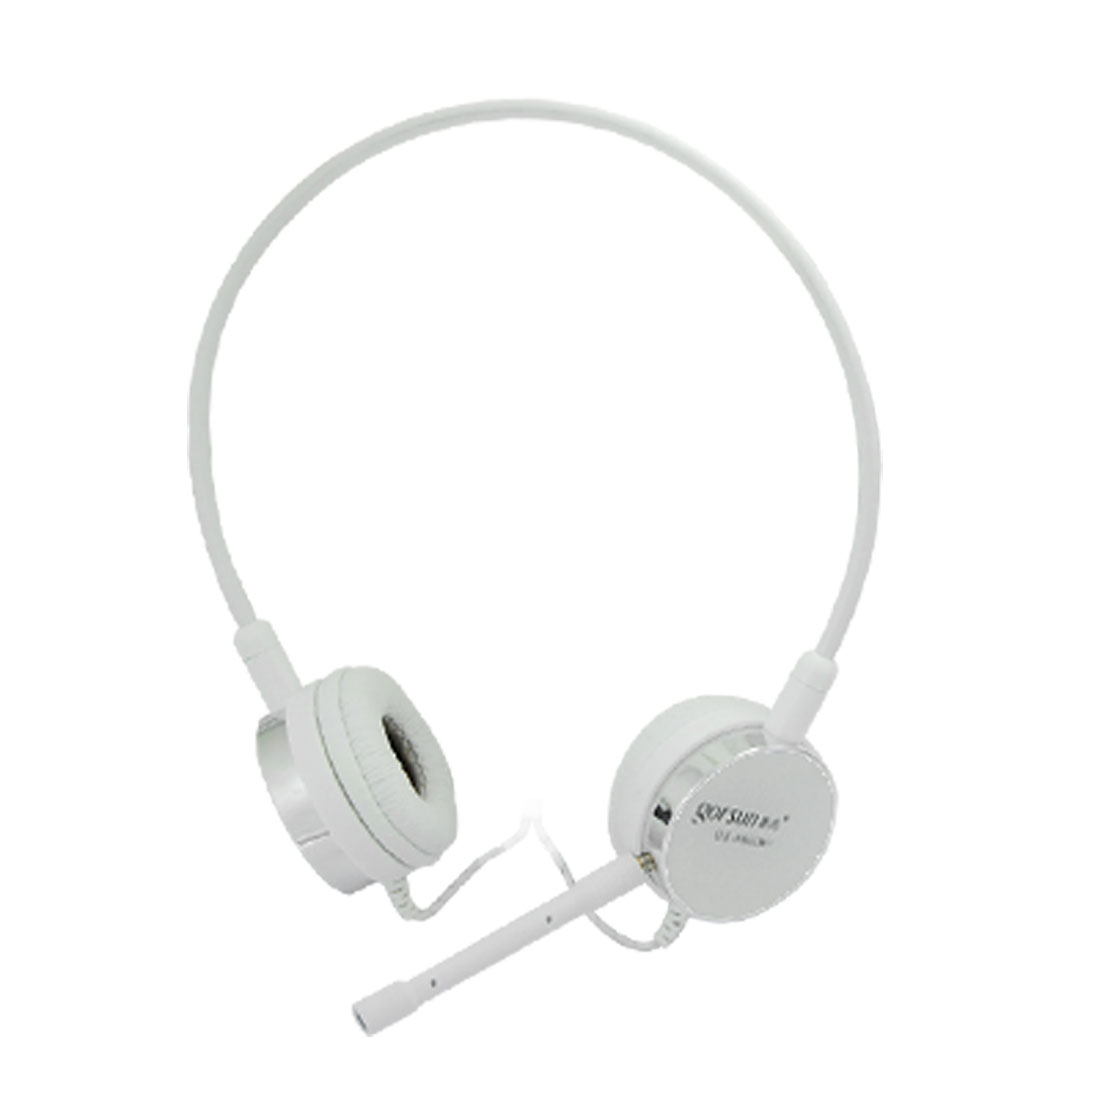 White 3.5mm PC Computer Online Chat Headset w Microphone